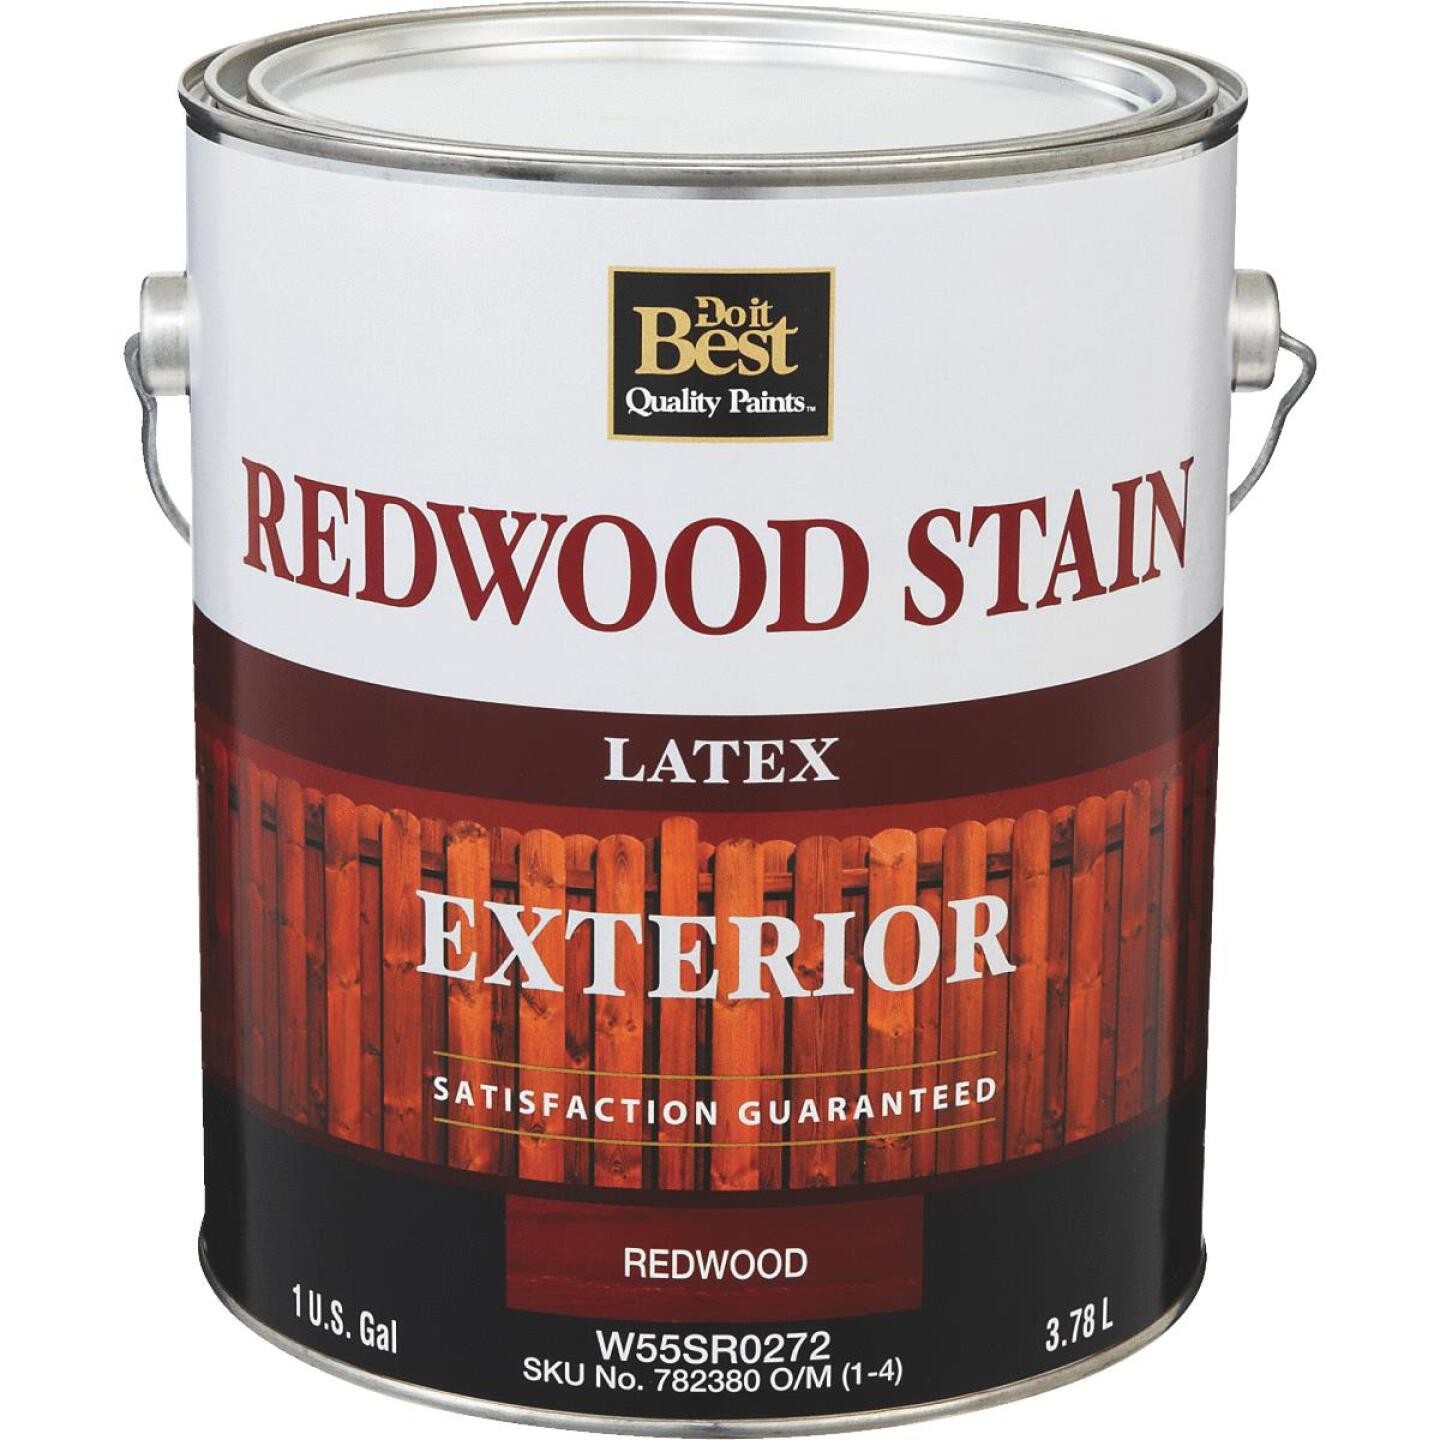 Do it Best Exterior Stain, Redwood, 1 Gal. Image 1